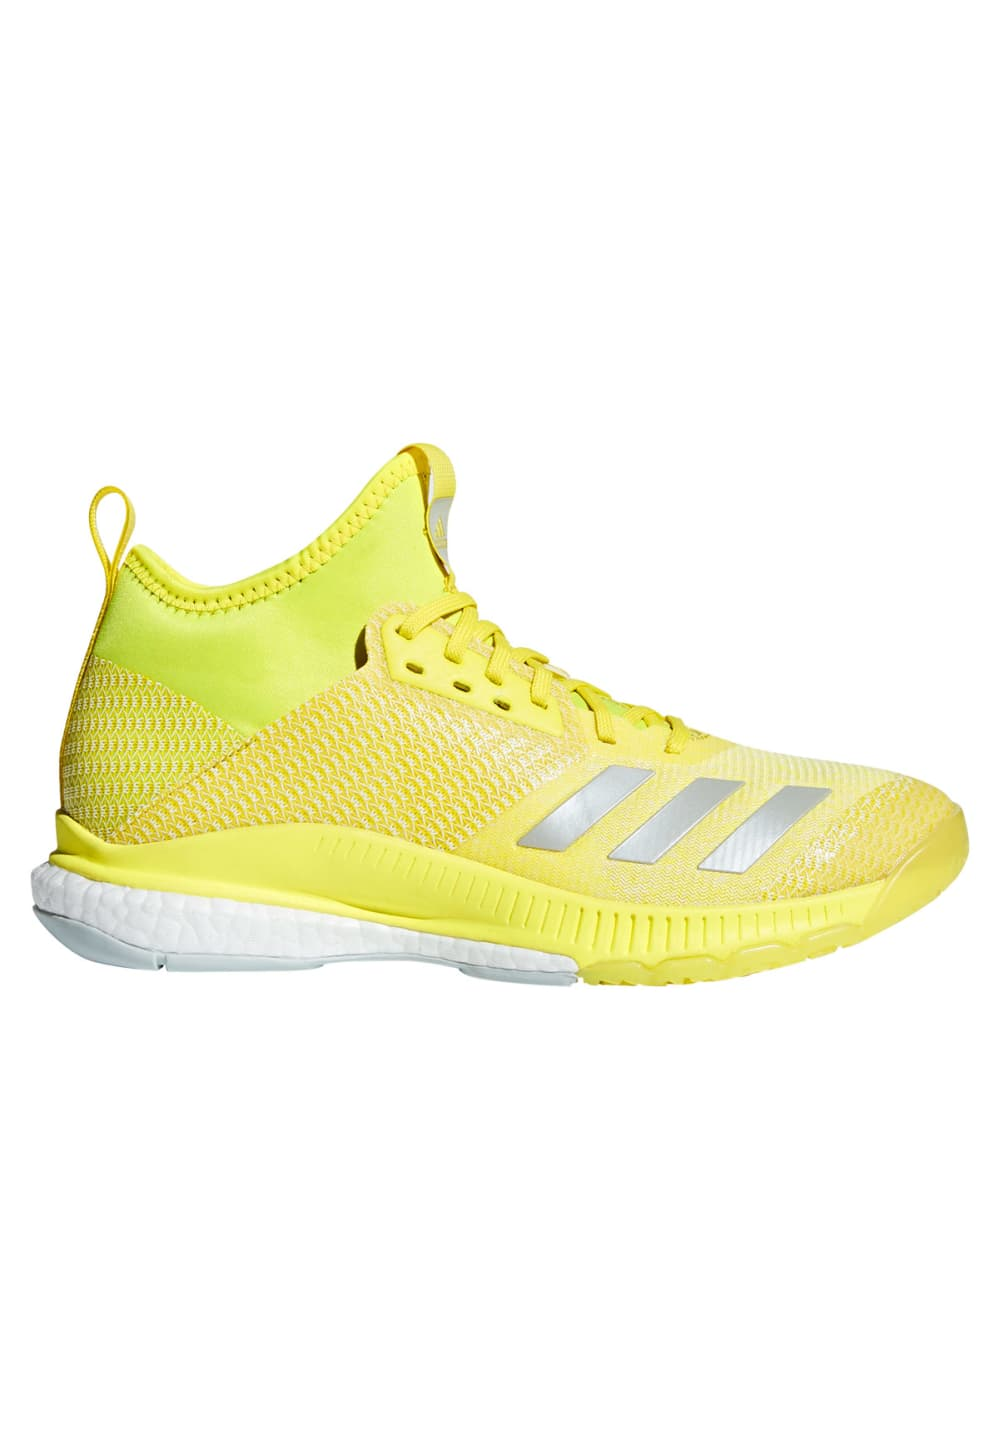 16ce06716853c adidas crazyflight X 2 mid - Volleyball shoes for Women - Yellow | 21RUN